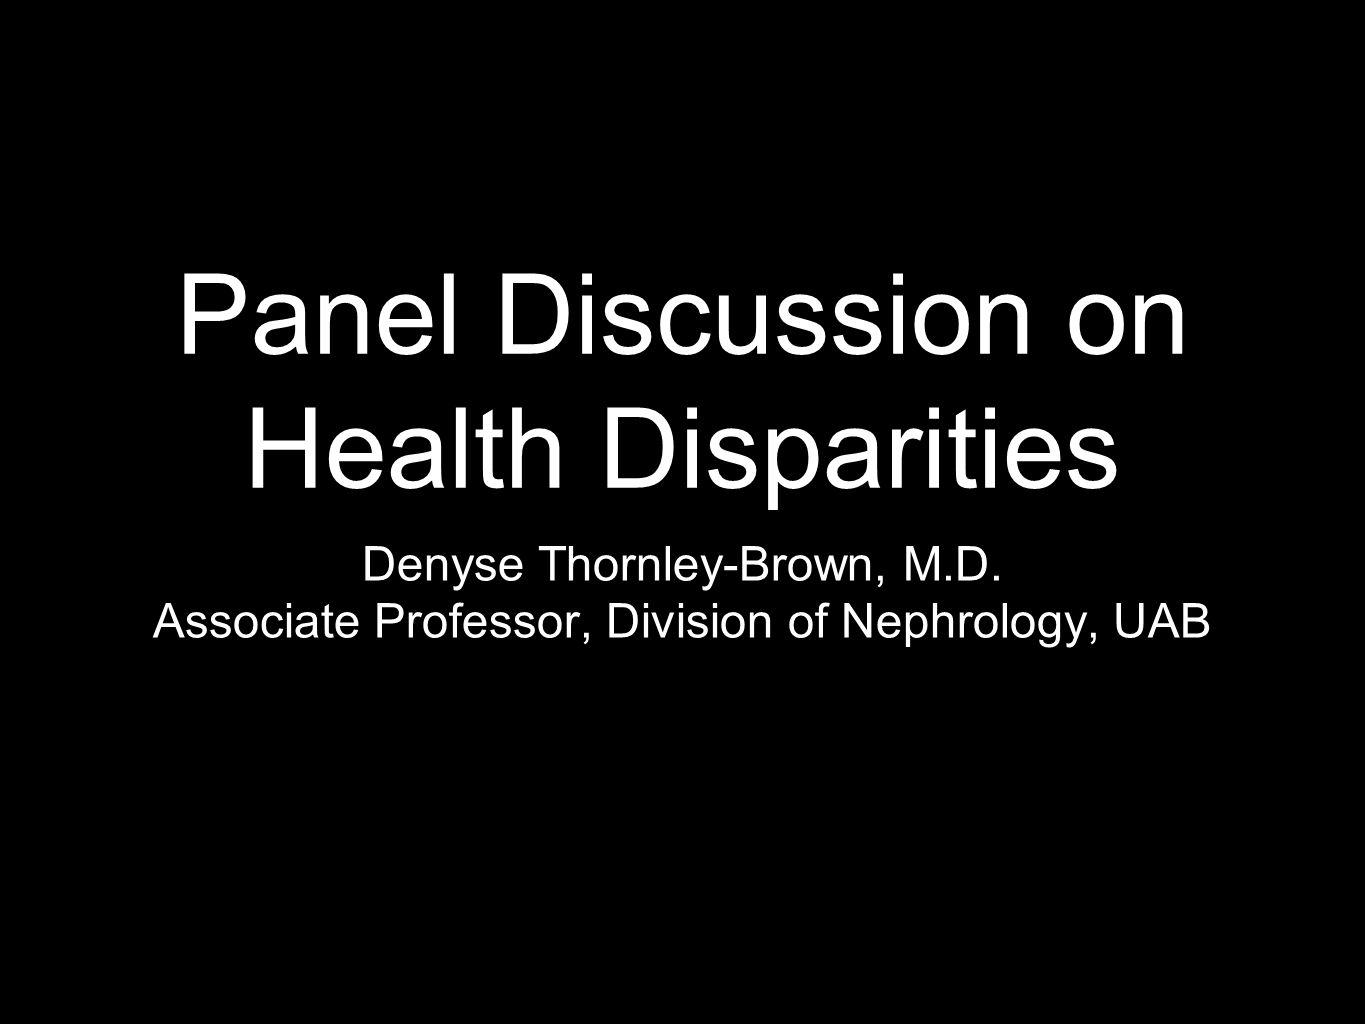 Panel Discussion on Health Disparities Denyse Thornley-Brown, M.D.